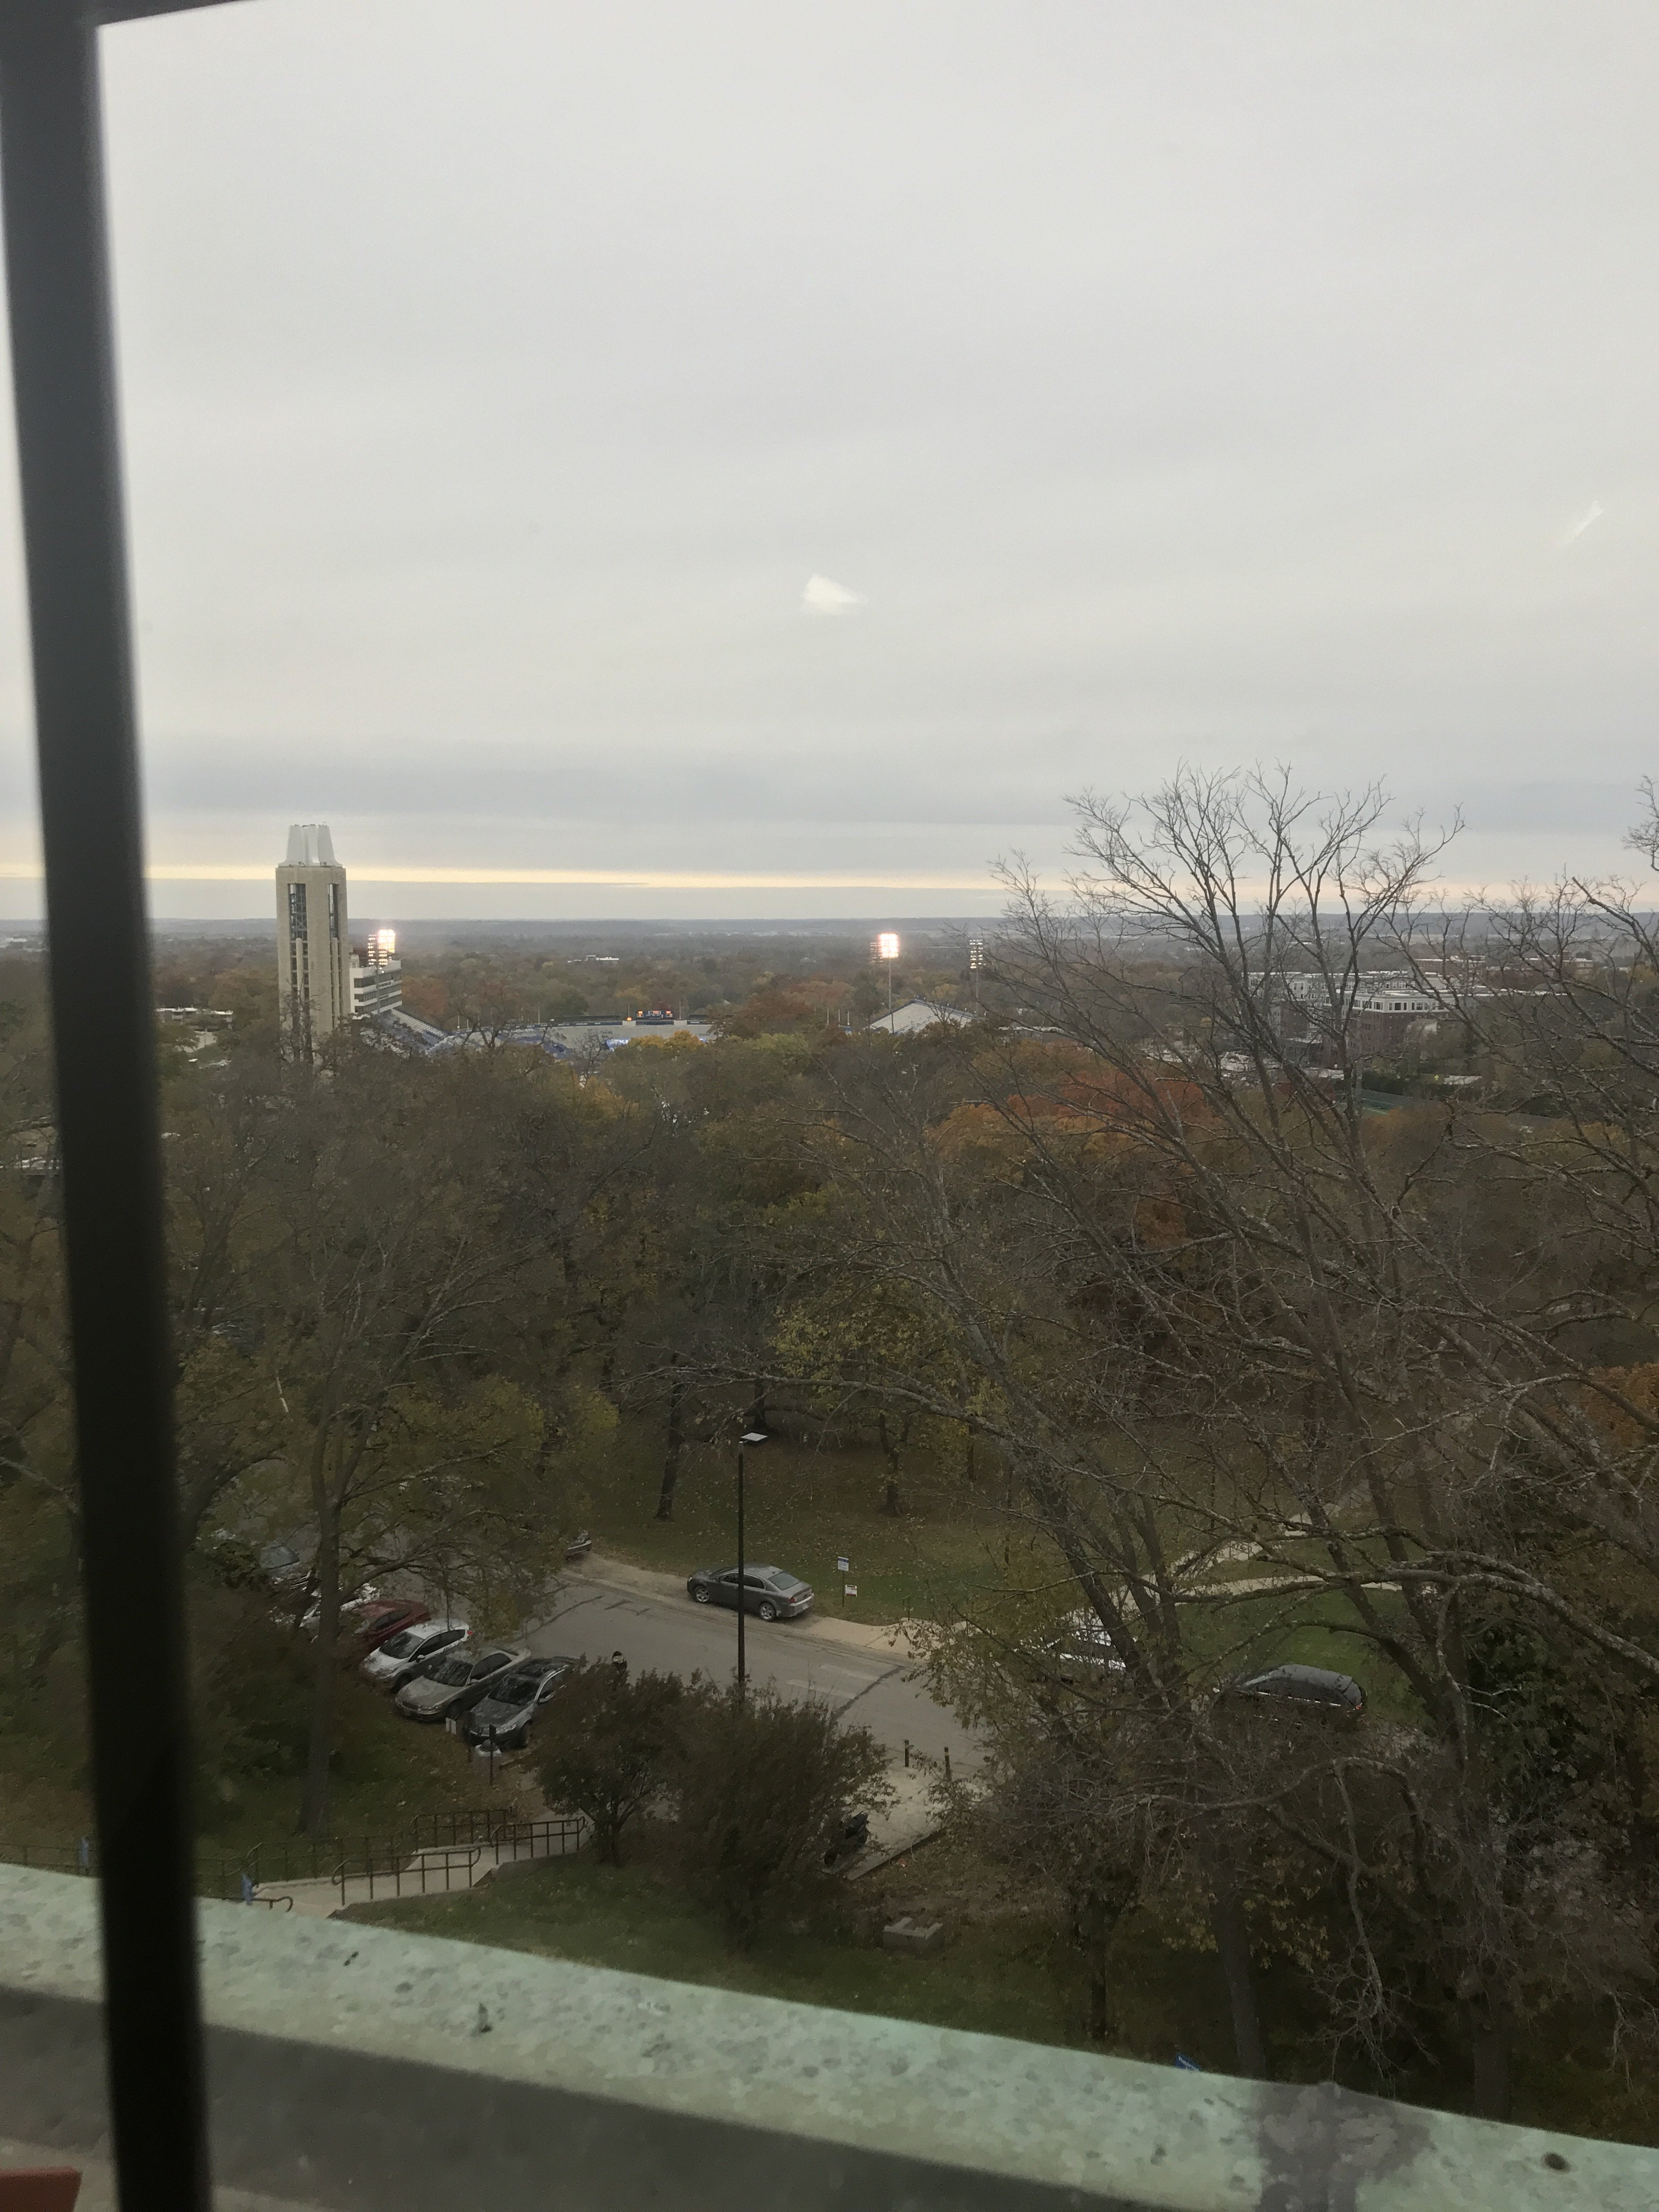 4th floor views from Bailey Hall, from which you can see KU's Memorial Stadium.